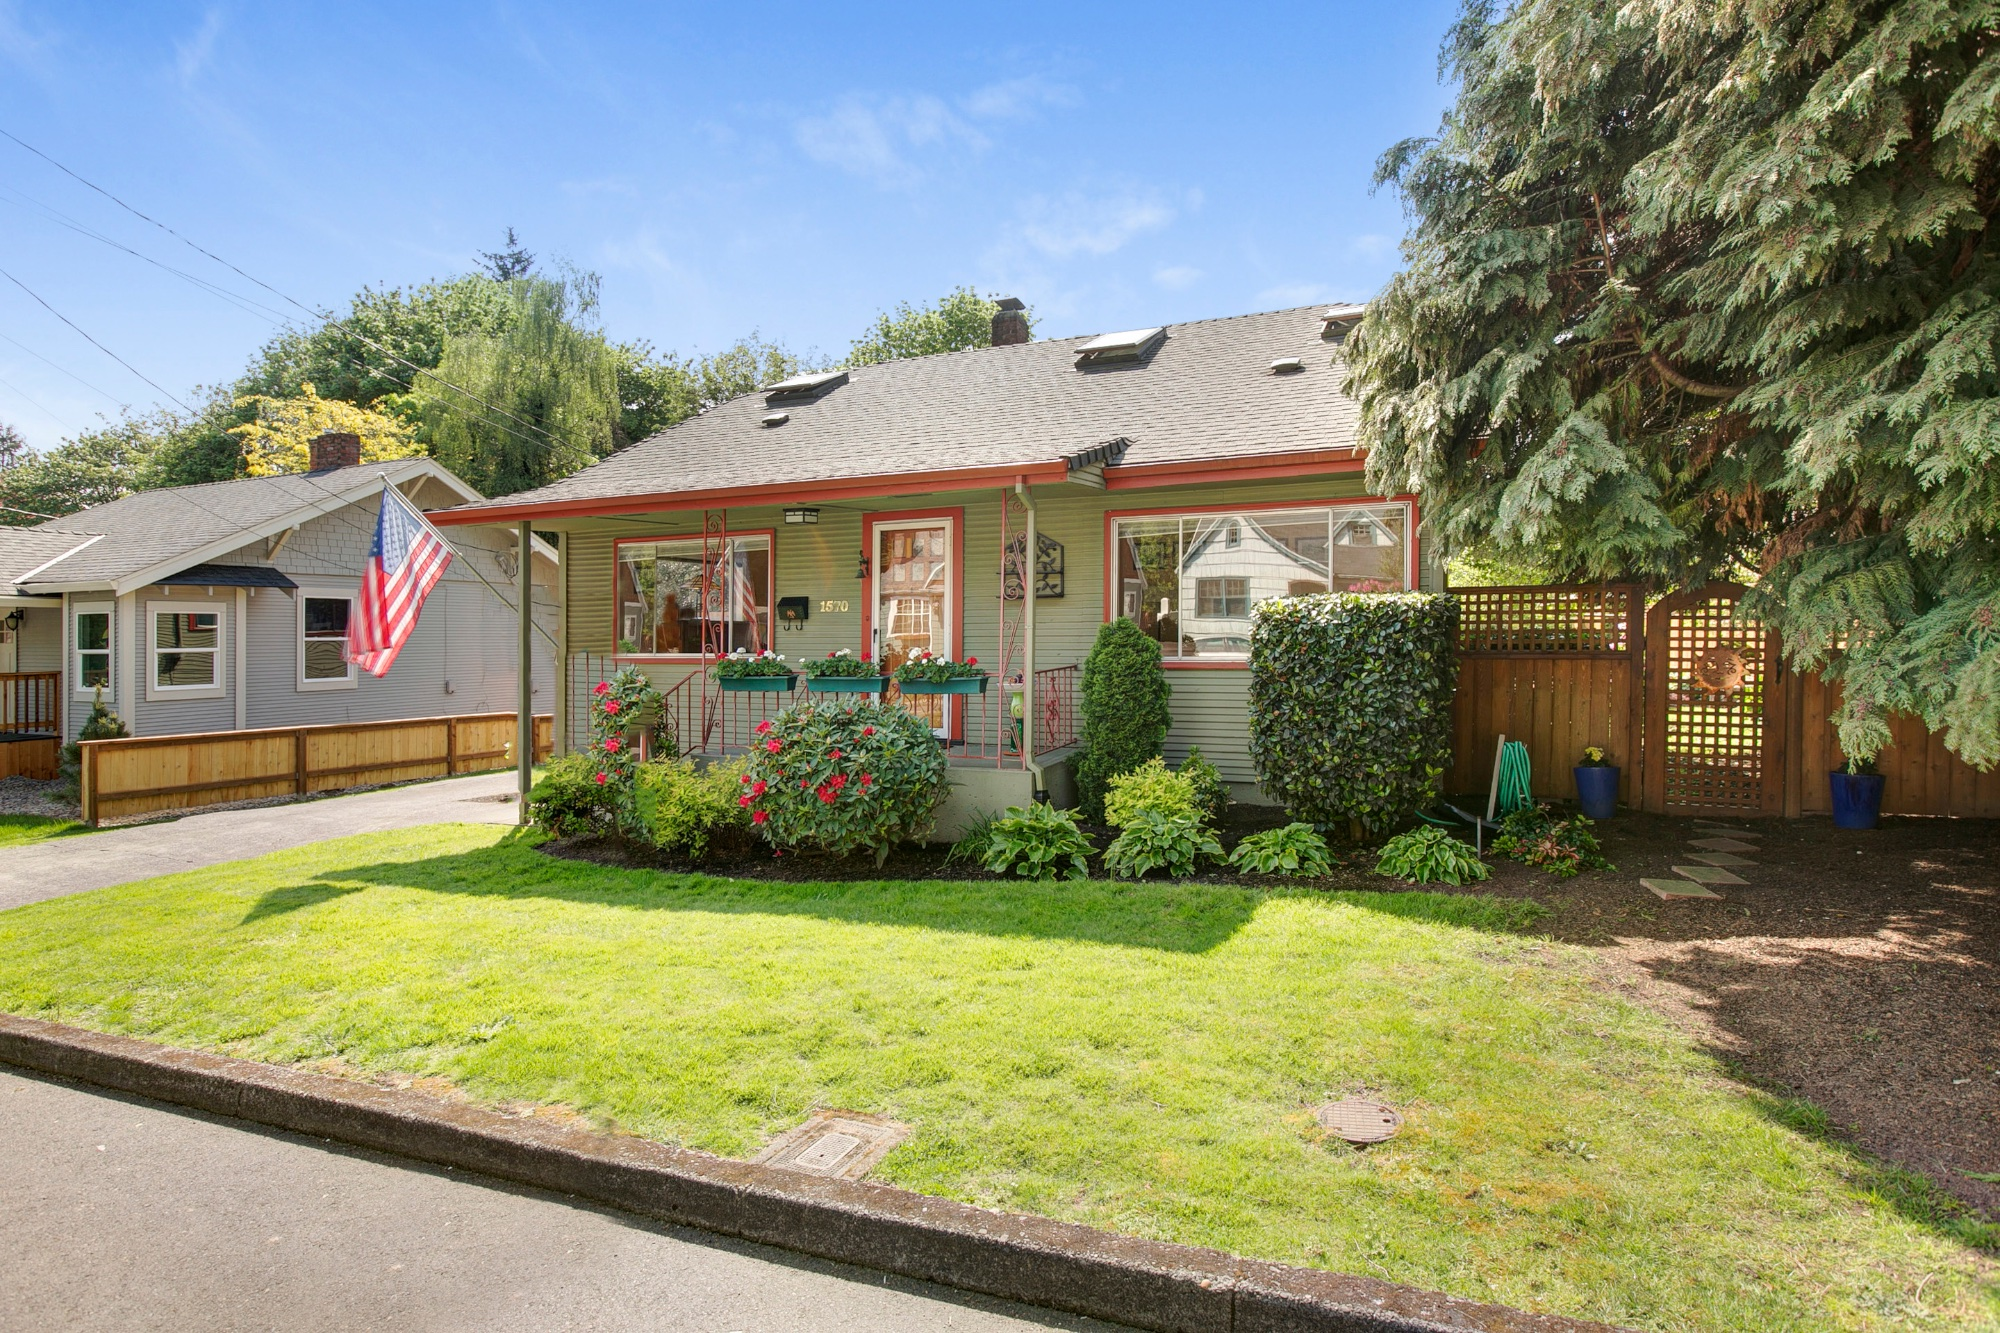 04_1570 Holly St., West Linn.jpg